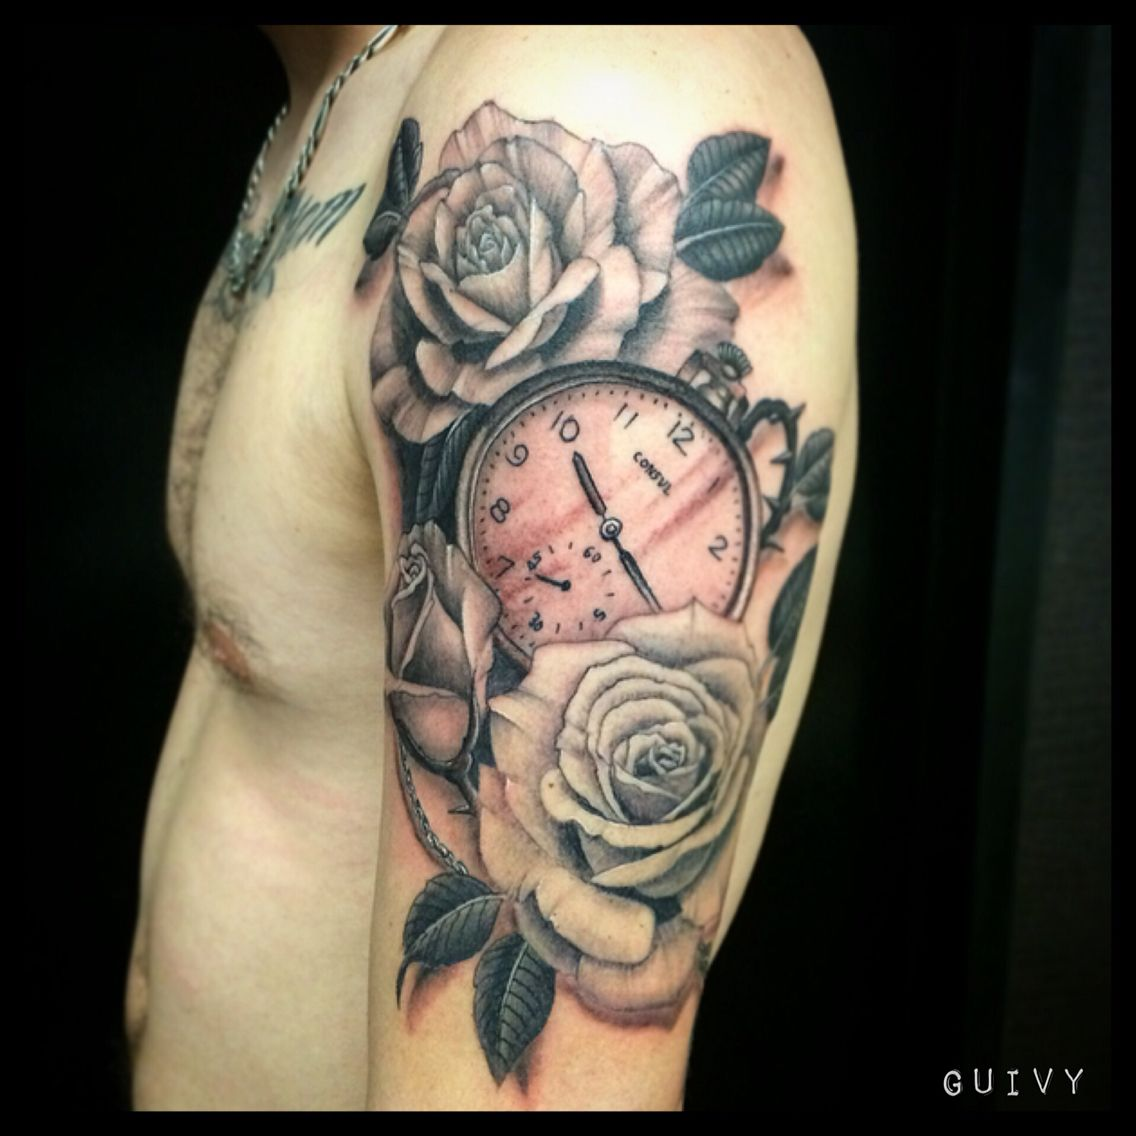 tattoo by guivy geneve switzerland pocket watch roses montre a gousset realistic. Black Bedroom Furniture Sets. Home Design Ideas